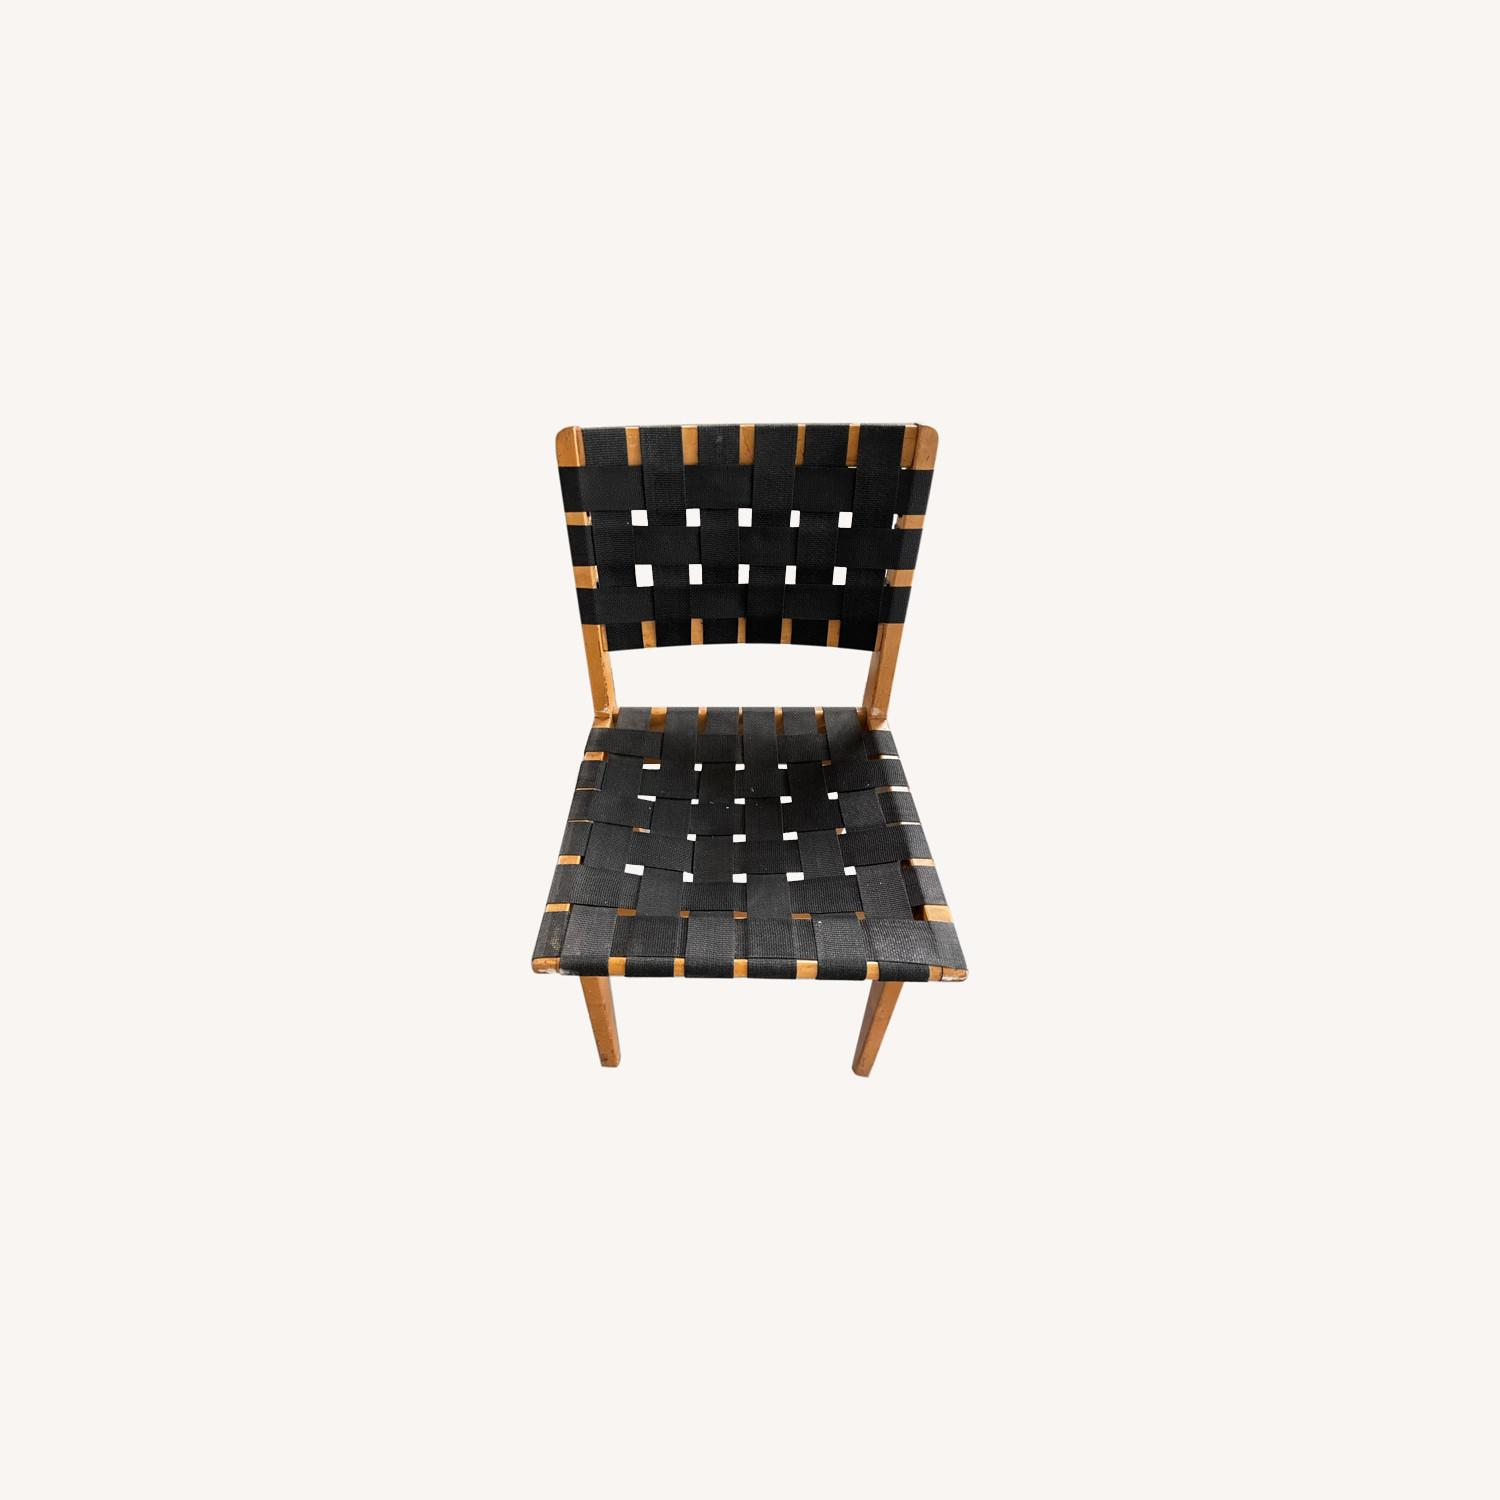 Knoll Vintage Jens Risom Chairs - image-0